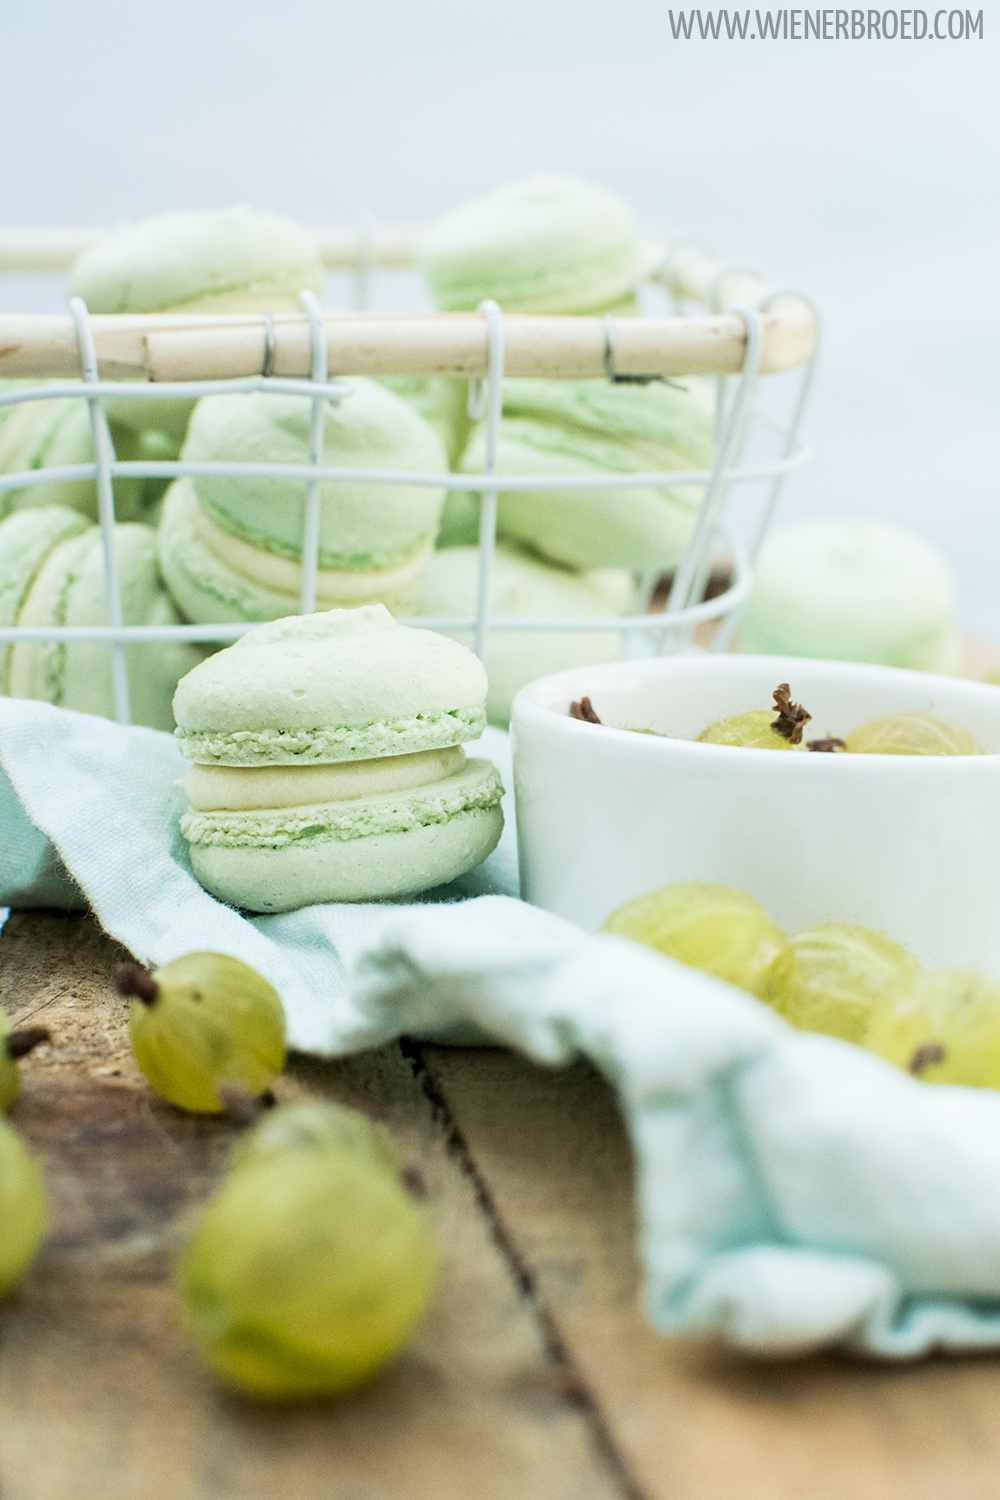 Stachelbeer-Macaron - Rezept für süß-saure Stachelbeer-Füllung in einem luftigen Macaron / Gooseberry macaron - Recipe for a sweet'n'sour gooseberry filling in a fluffy macaron [wienerbroed.com]